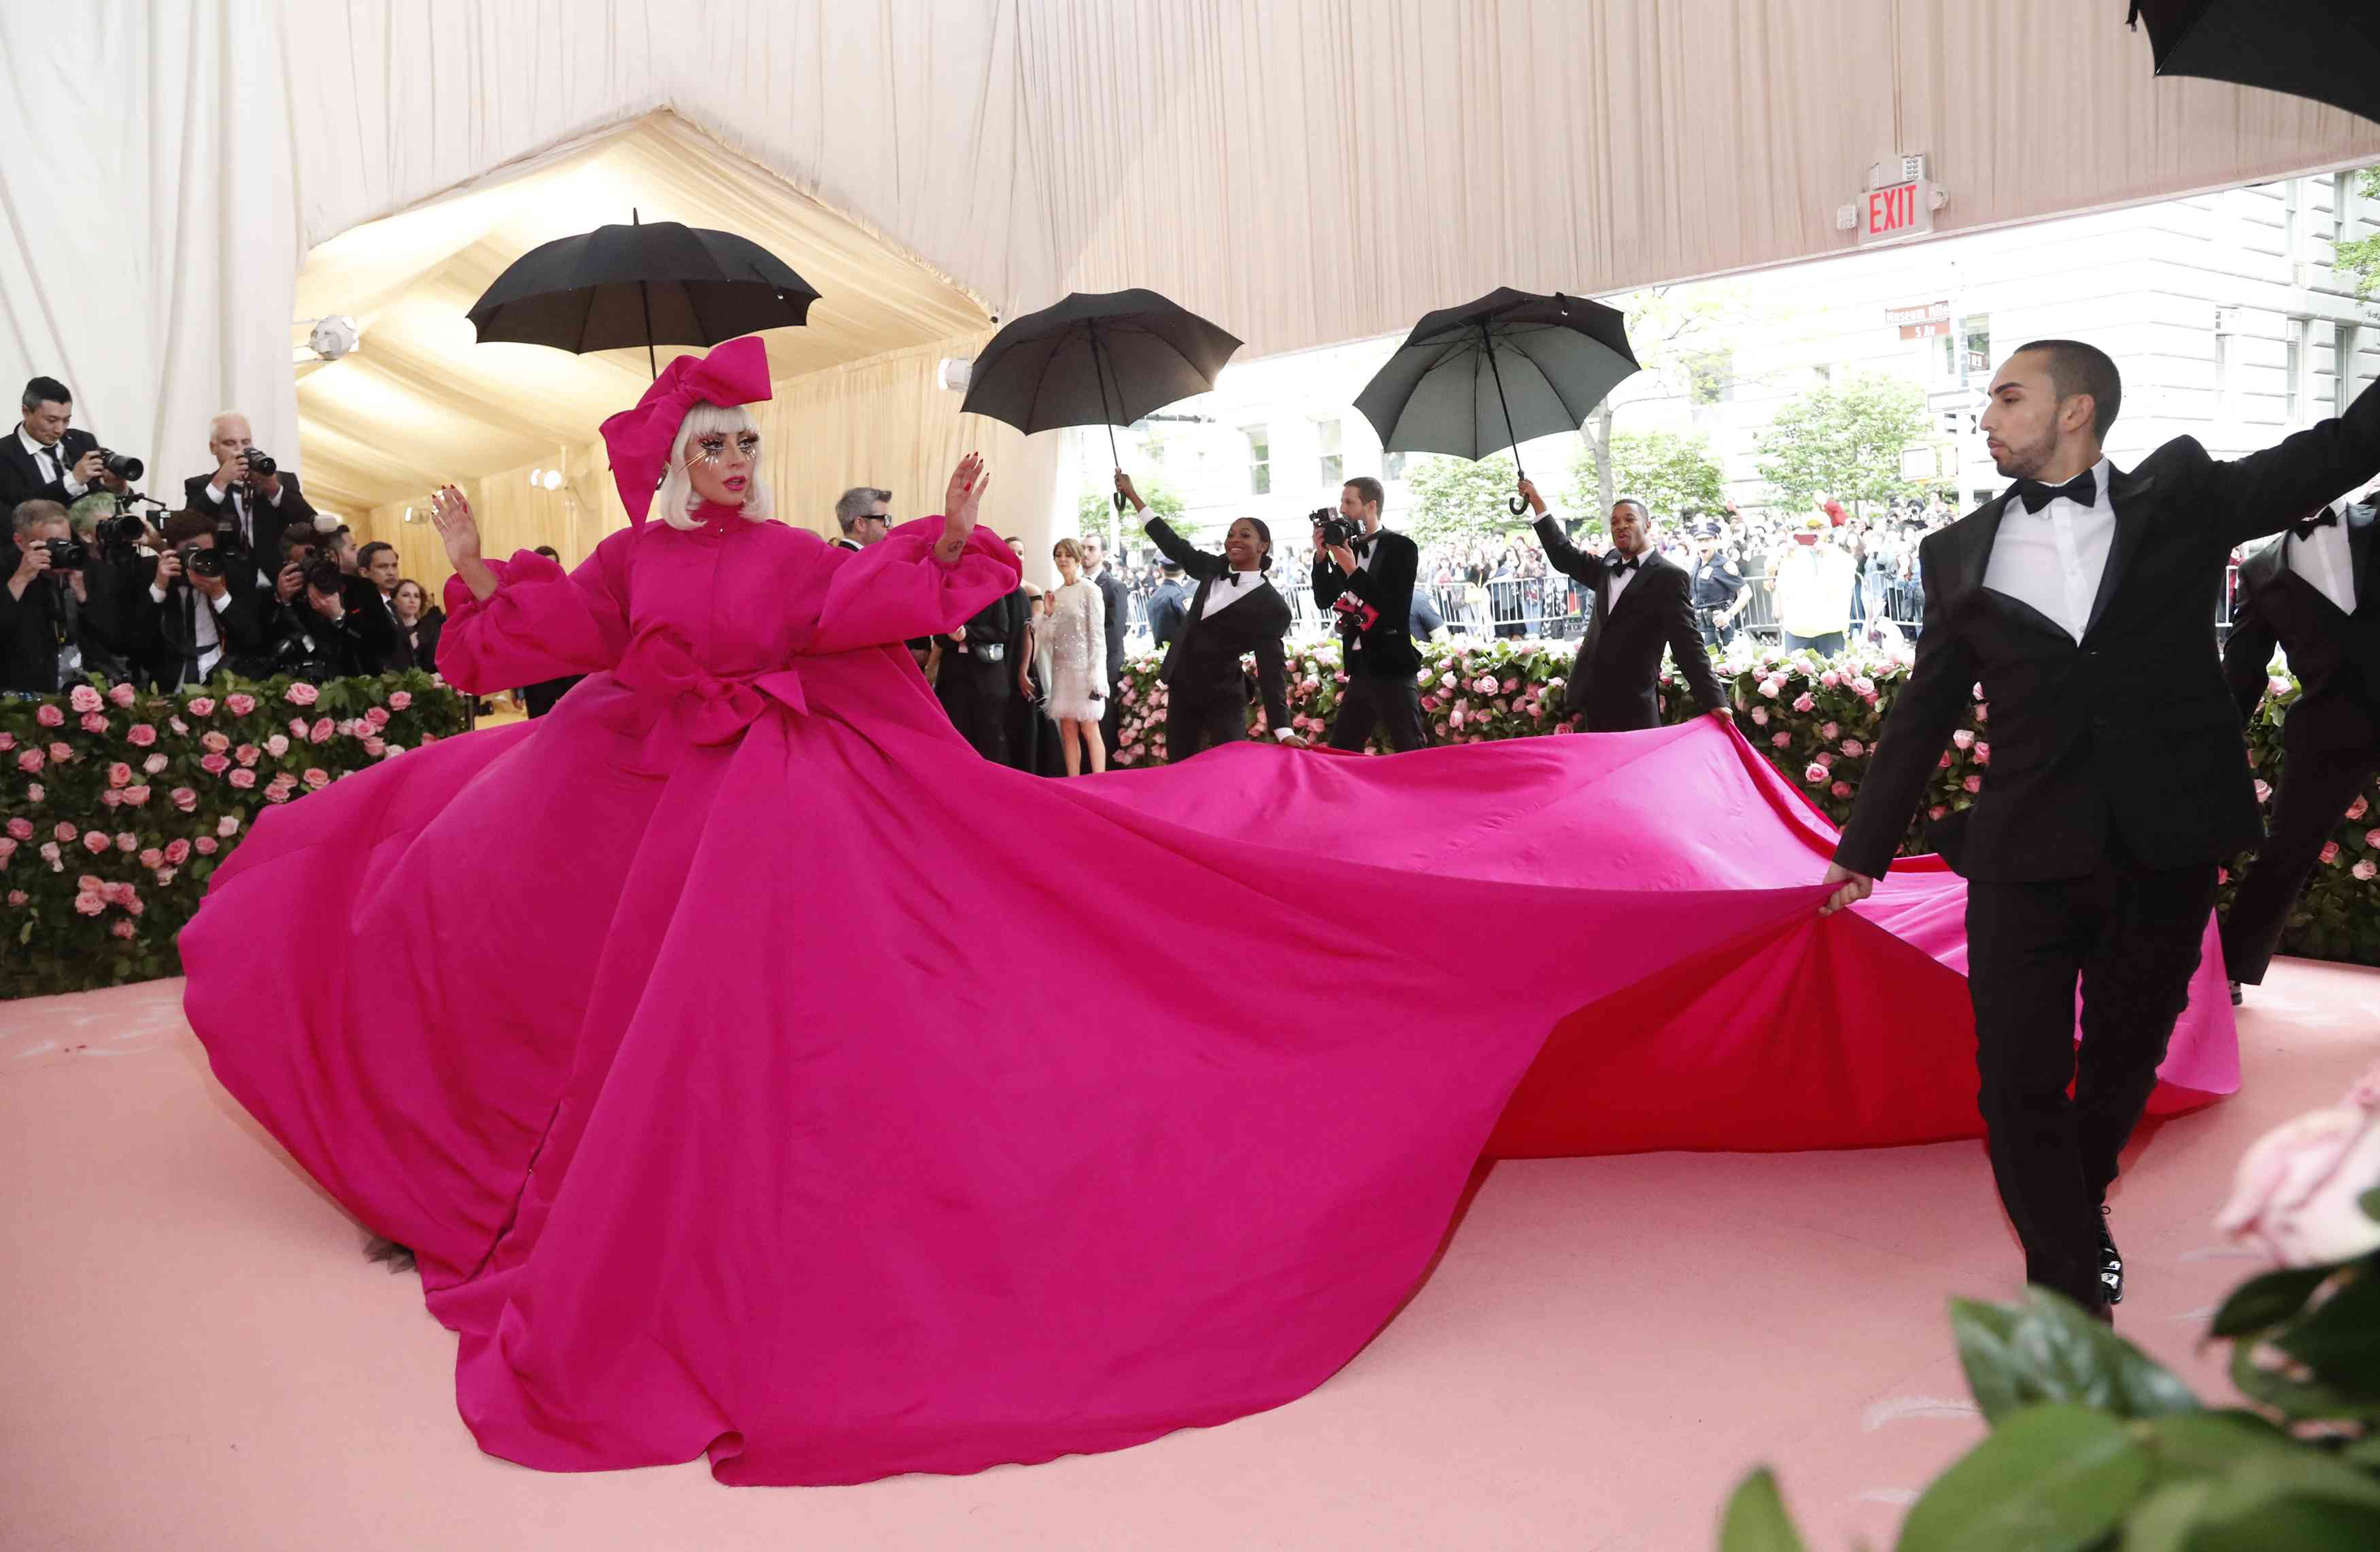 Lady Gaga at the Met Gala 2019 | Image credit: Mario Anzuoni / Reuters